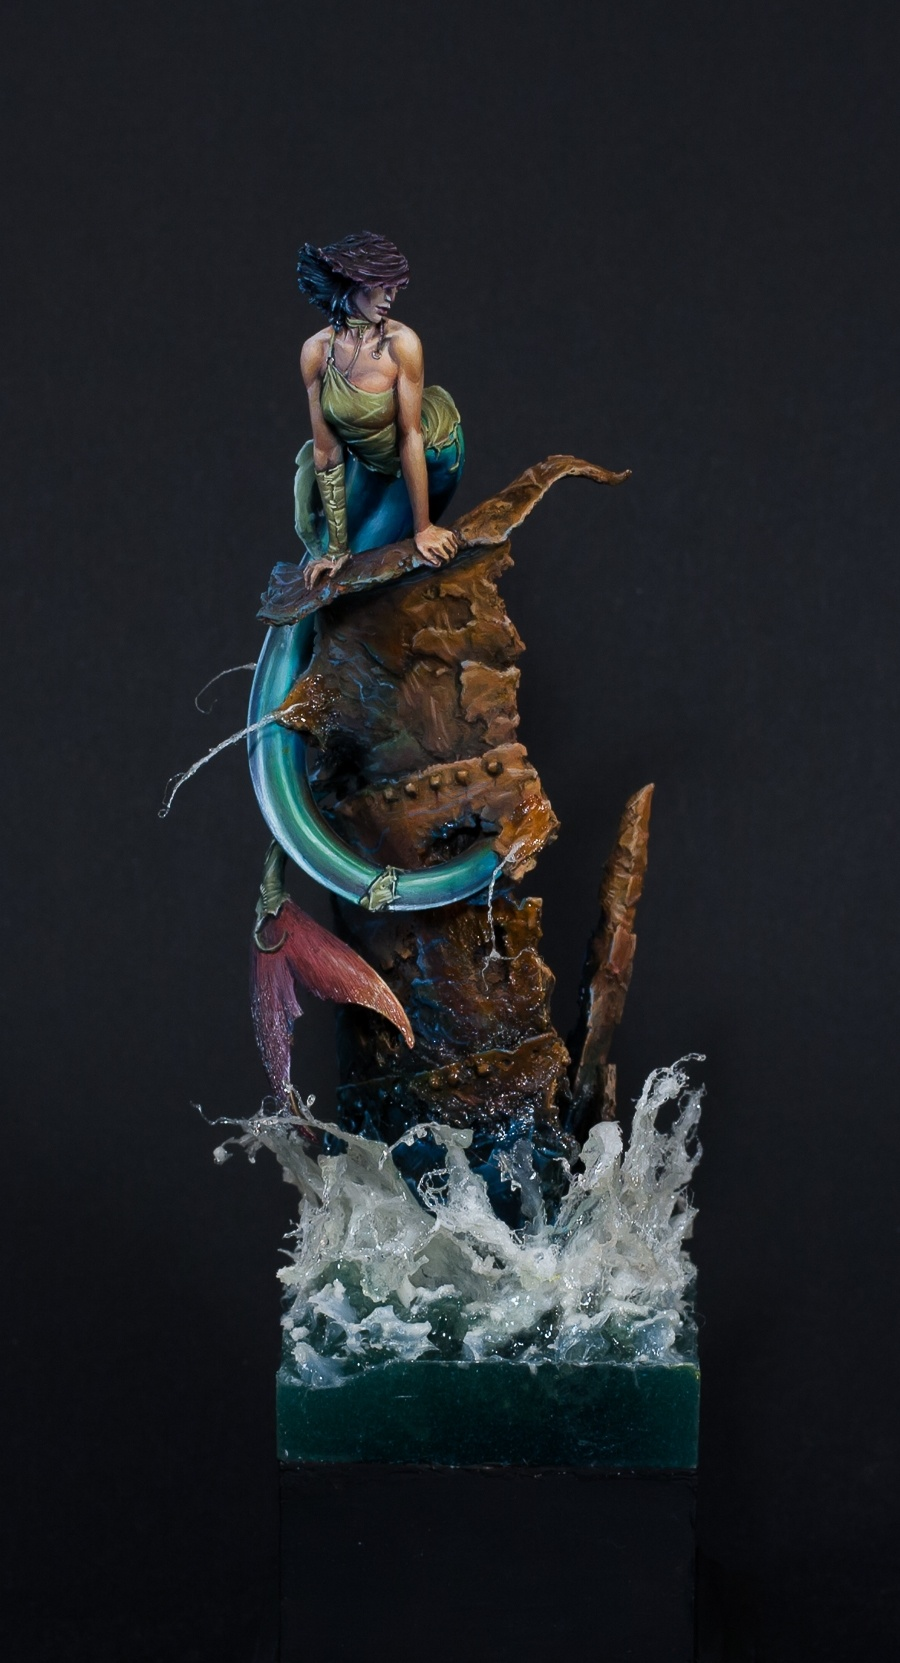 Mermaid By Andreas -Feanor- Pettau · Putty&Paint